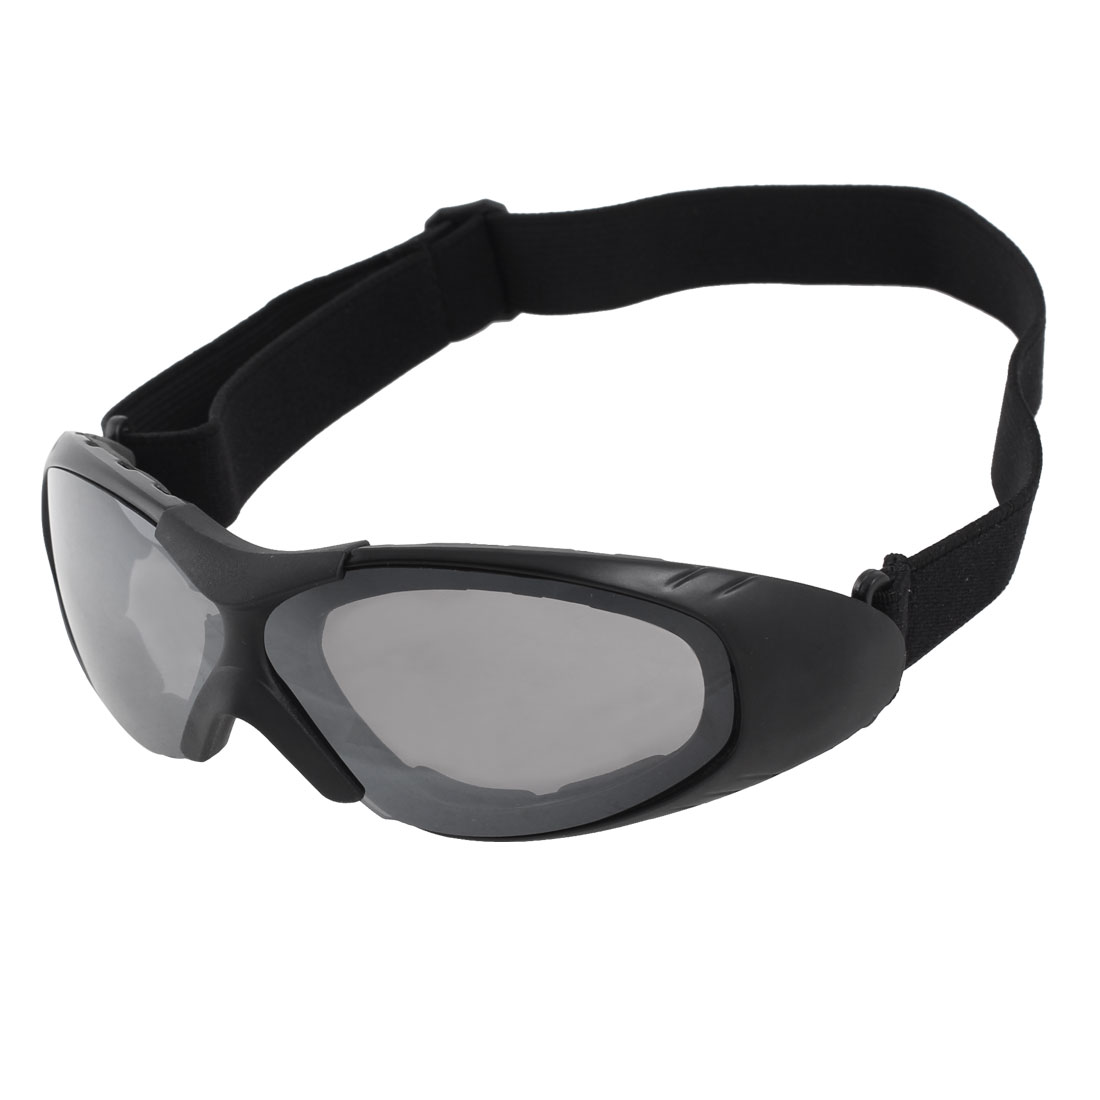 Climbing Racing Skiing Safety Glasses Clear Black Lens Ski Sports Goggles UV400